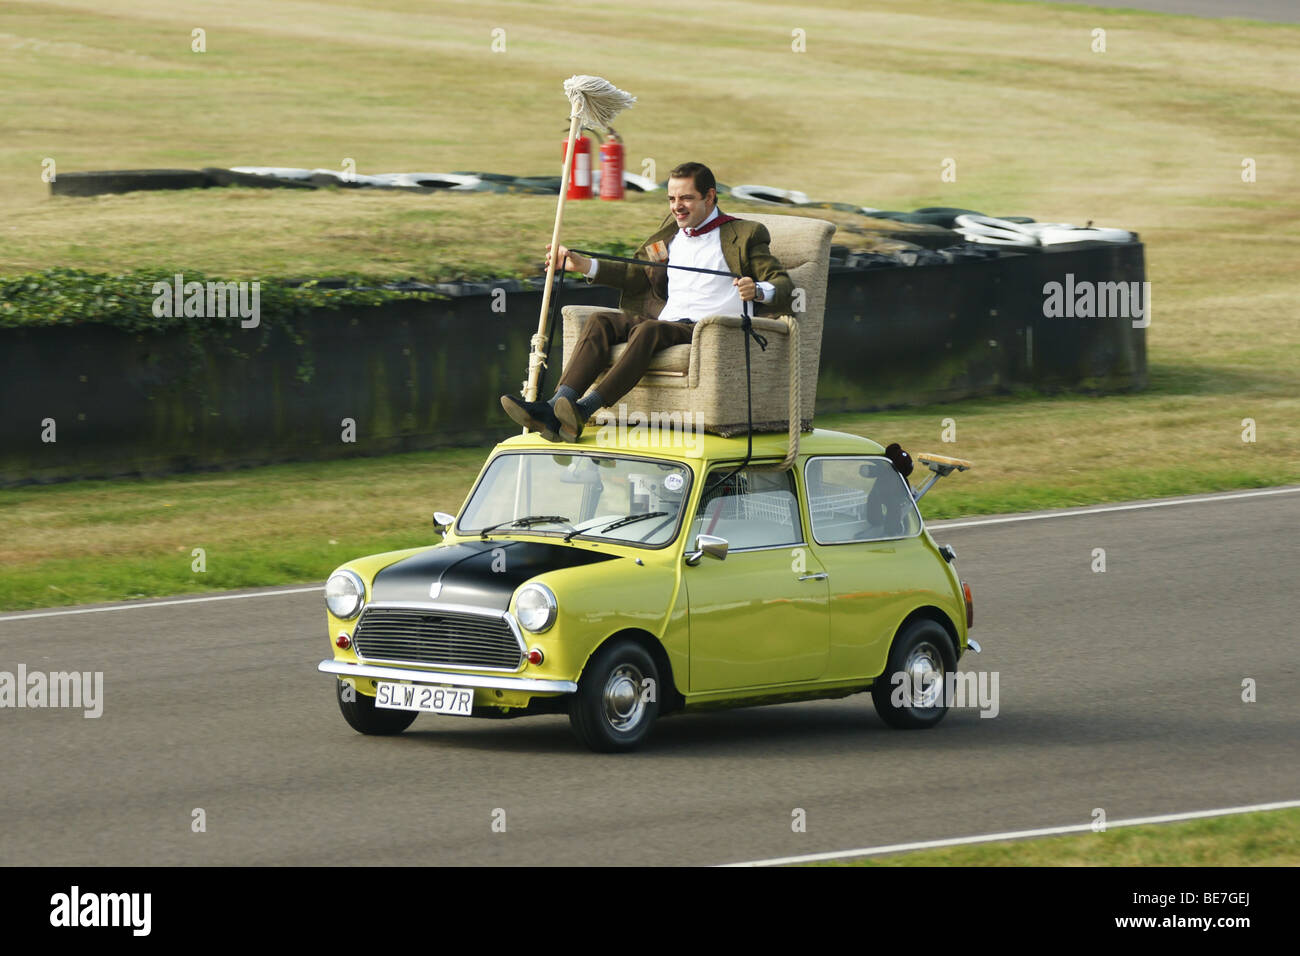 Mr bean car stock photos & mr bean car stock images alamy.